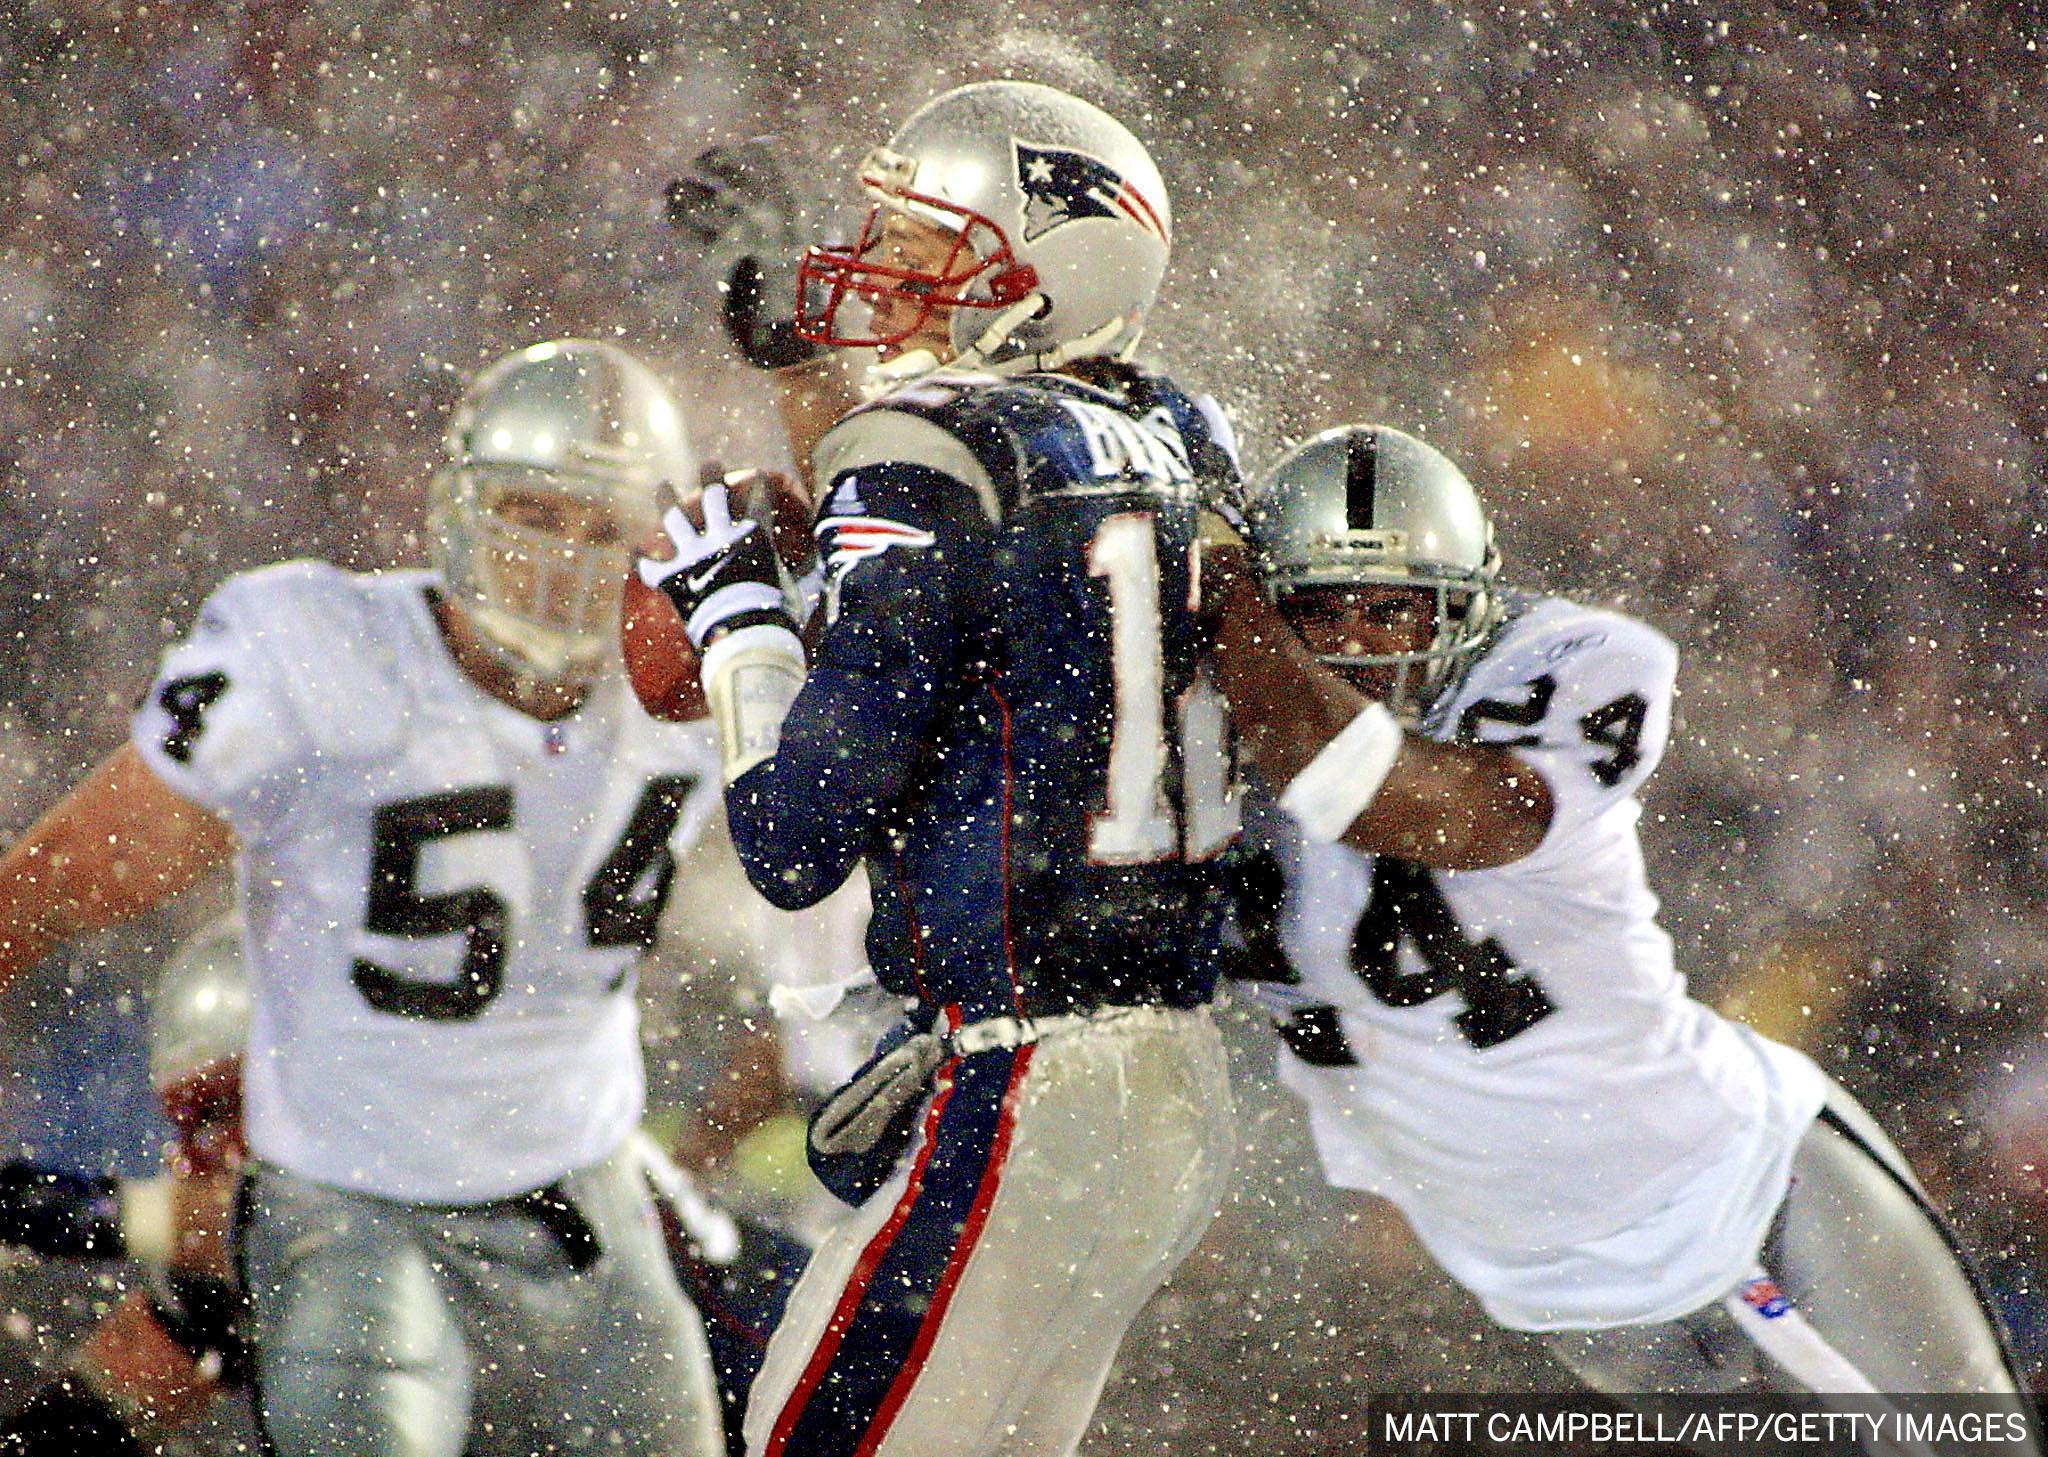 On this date in 2002, the world learned what the Tuck Rule was. https://t.co/3RteO1yjht